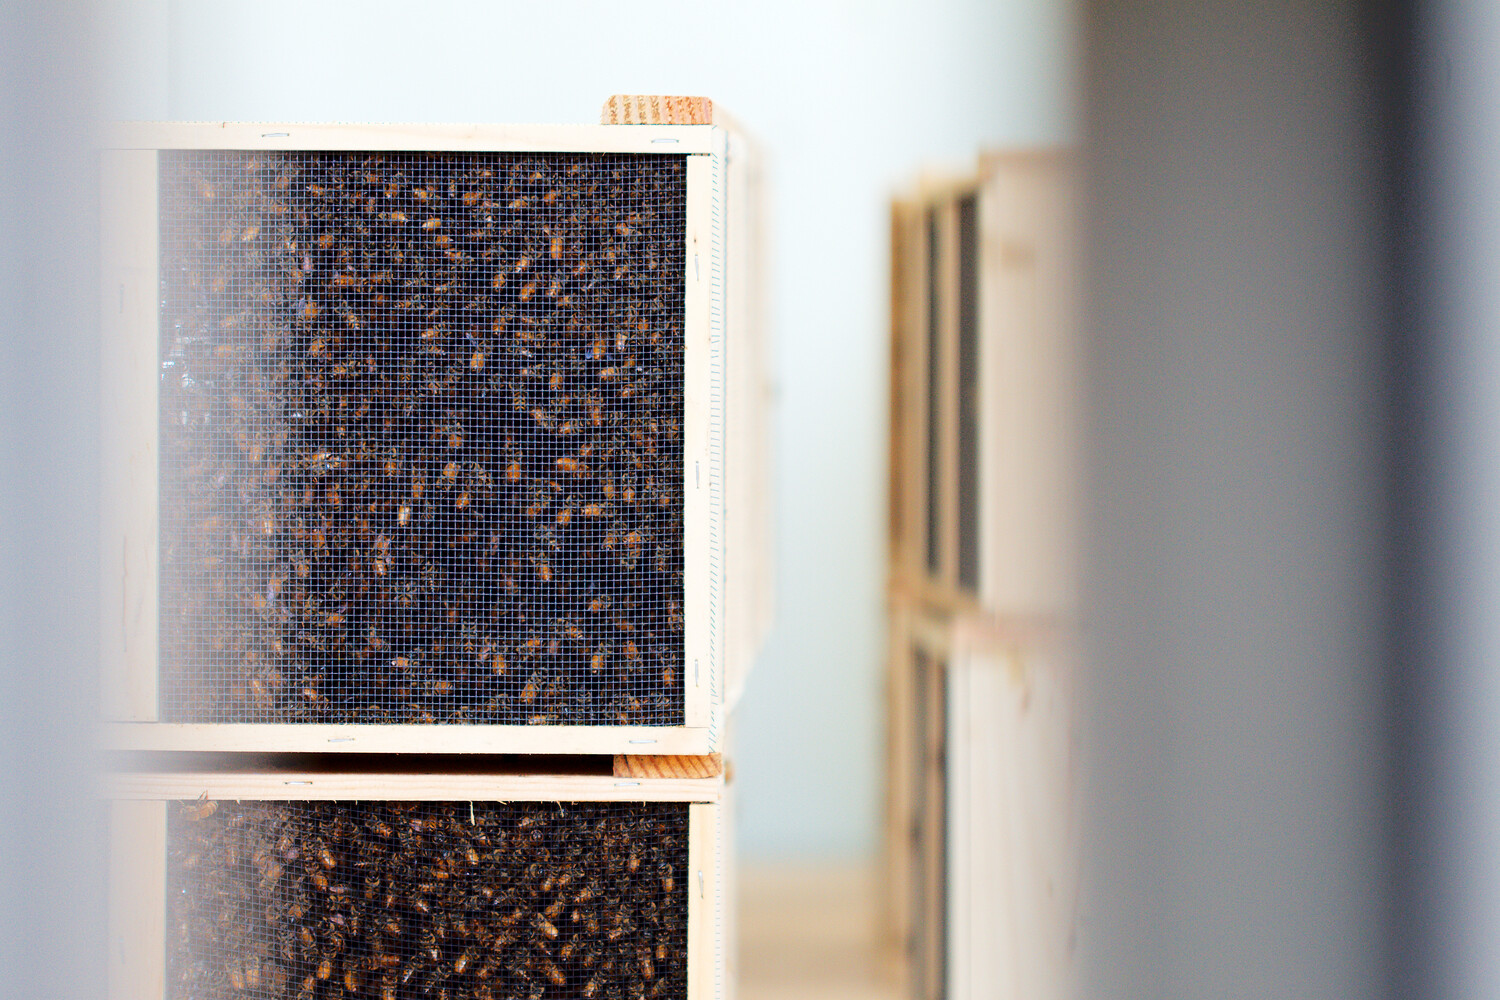 Live Bee Package With Queen